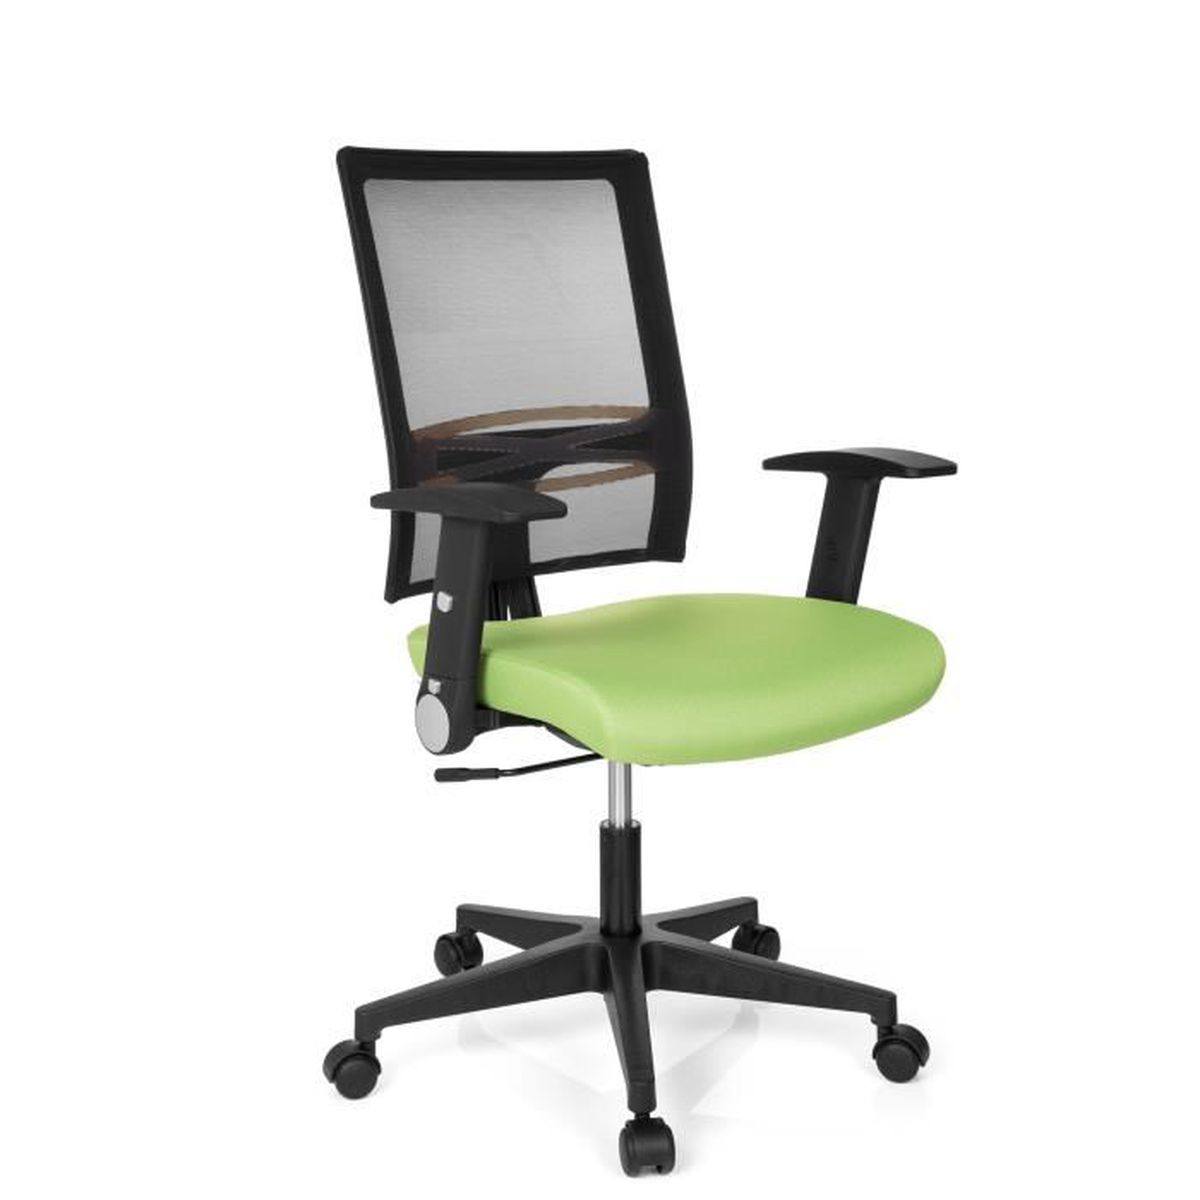 chaise de bureau si ge de bureau office r8 tissu maille vert hjh office achat vente chaise. Black Bedroom Furniture Sets. Home Design Ideas